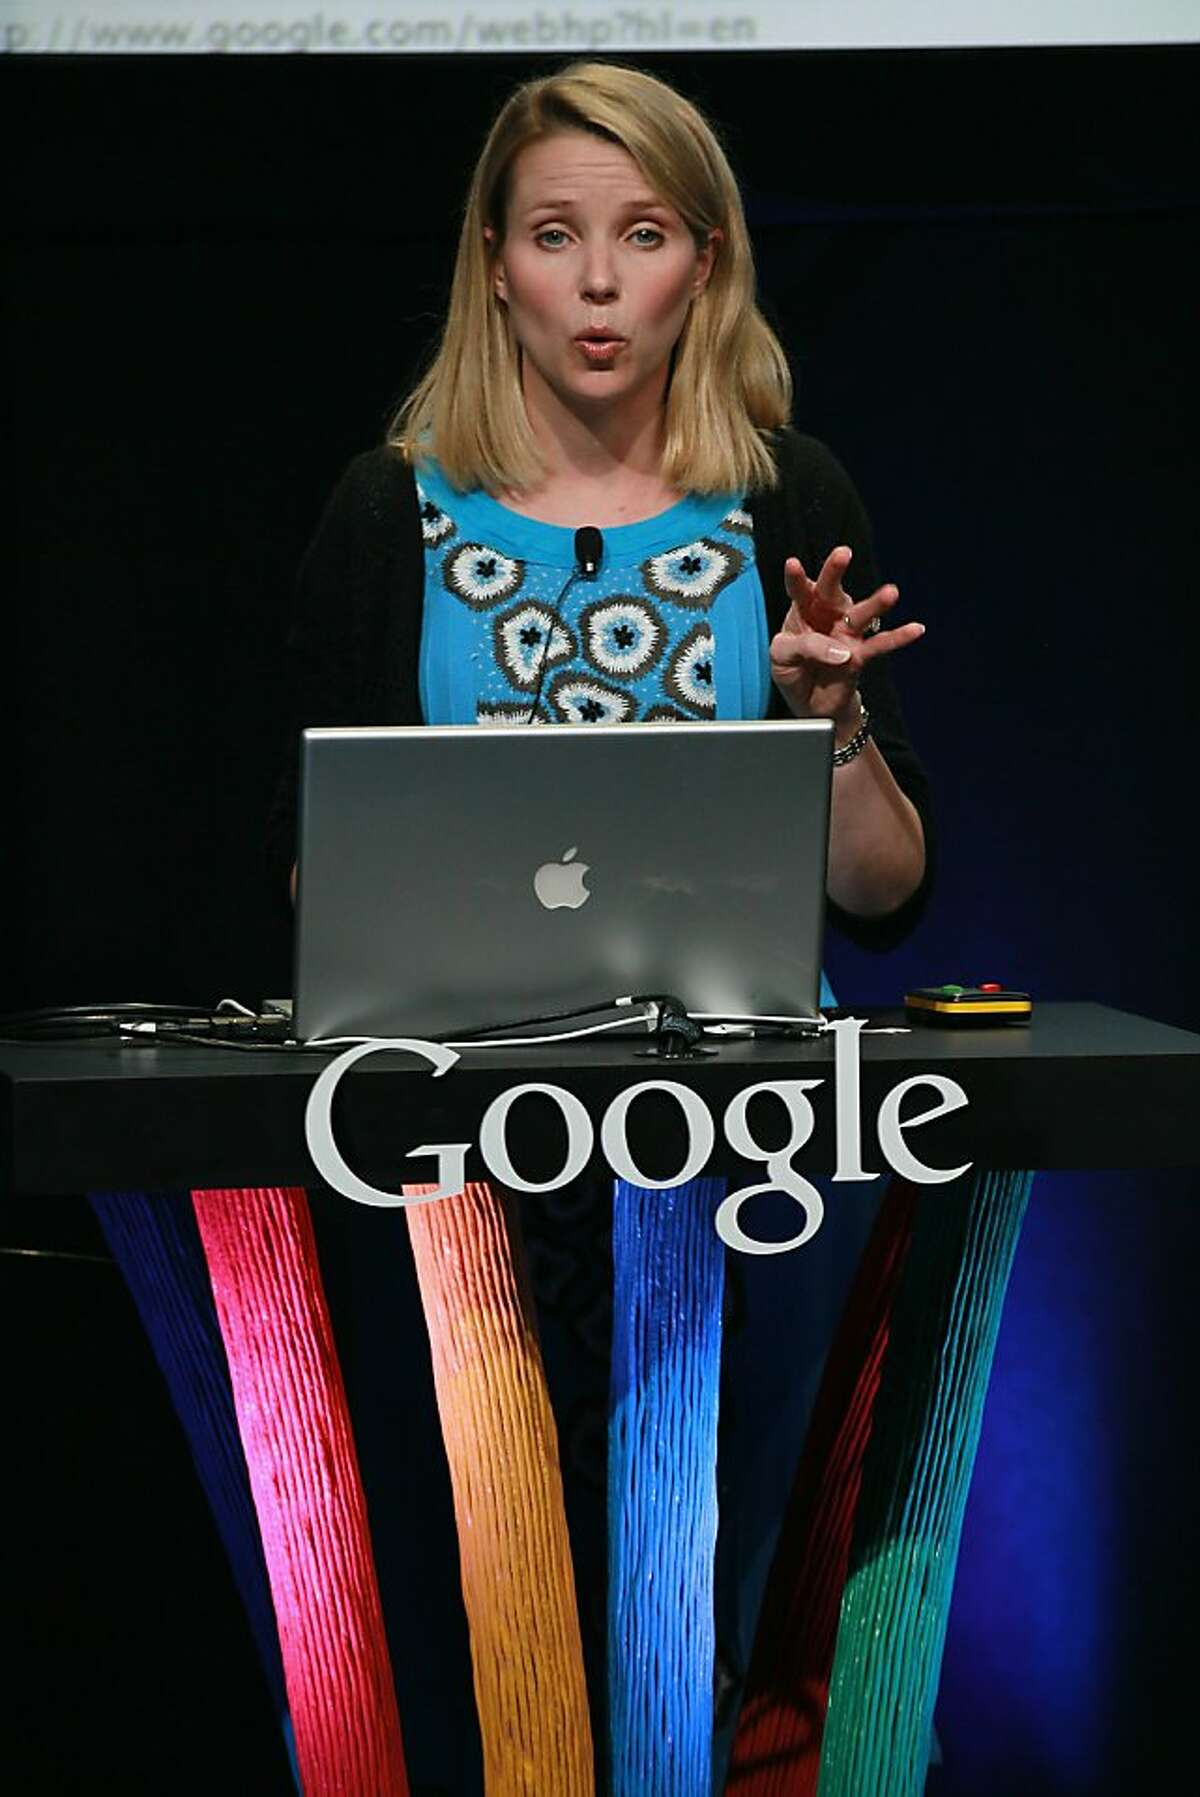 SAN FRANCISCO - SEPTEMBER 08: Google Vice President of Search Product and User Experience Marissa Mayer speaks during an announcement September 8, 2010 in San Francisco, California. Google announced the launch of Google Instant, a faster version of Google search that streams results live as you type your query. (Photo by Justin Sullivan/Getty Images) Ran on: 09-09-2010 Marissa Mayer, a Google vice president, outlines the instant search technology.